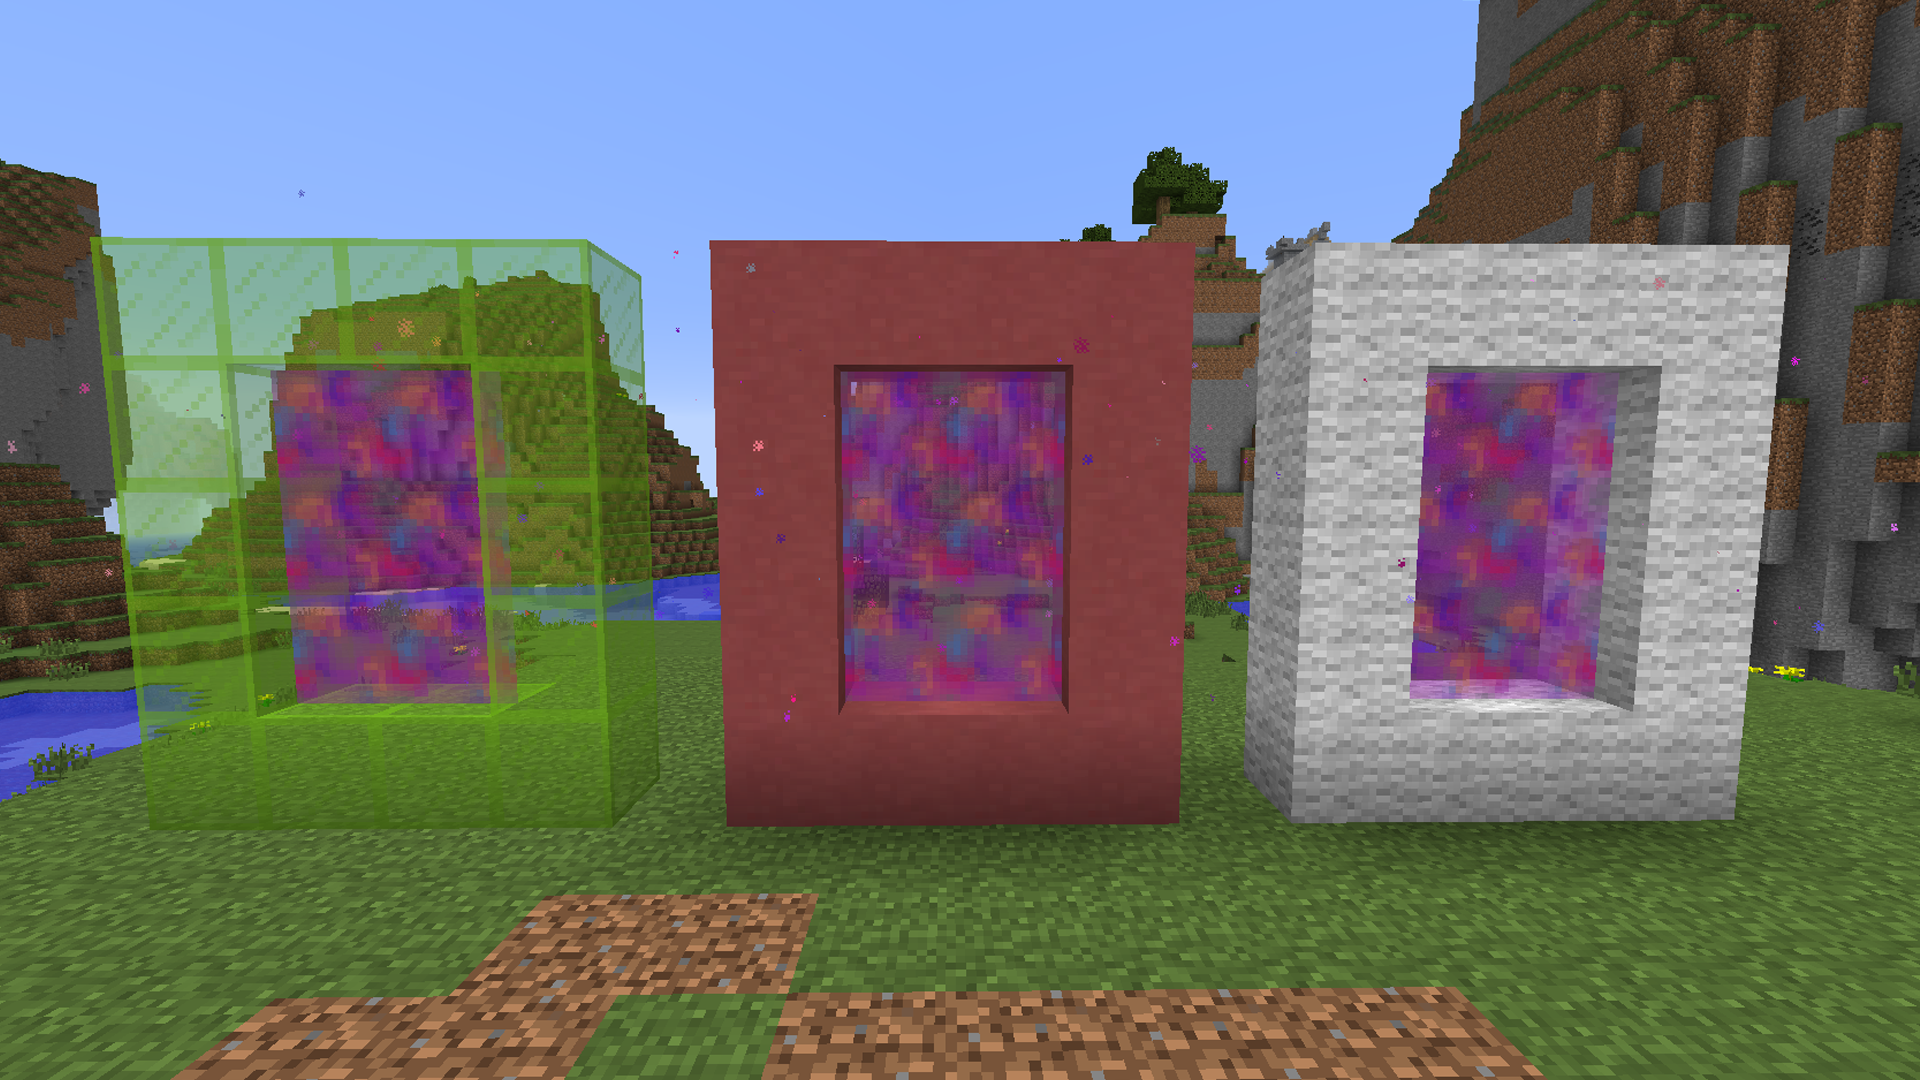 Colourful Portals Minecraft Mods - My little pony skins fur minecraft